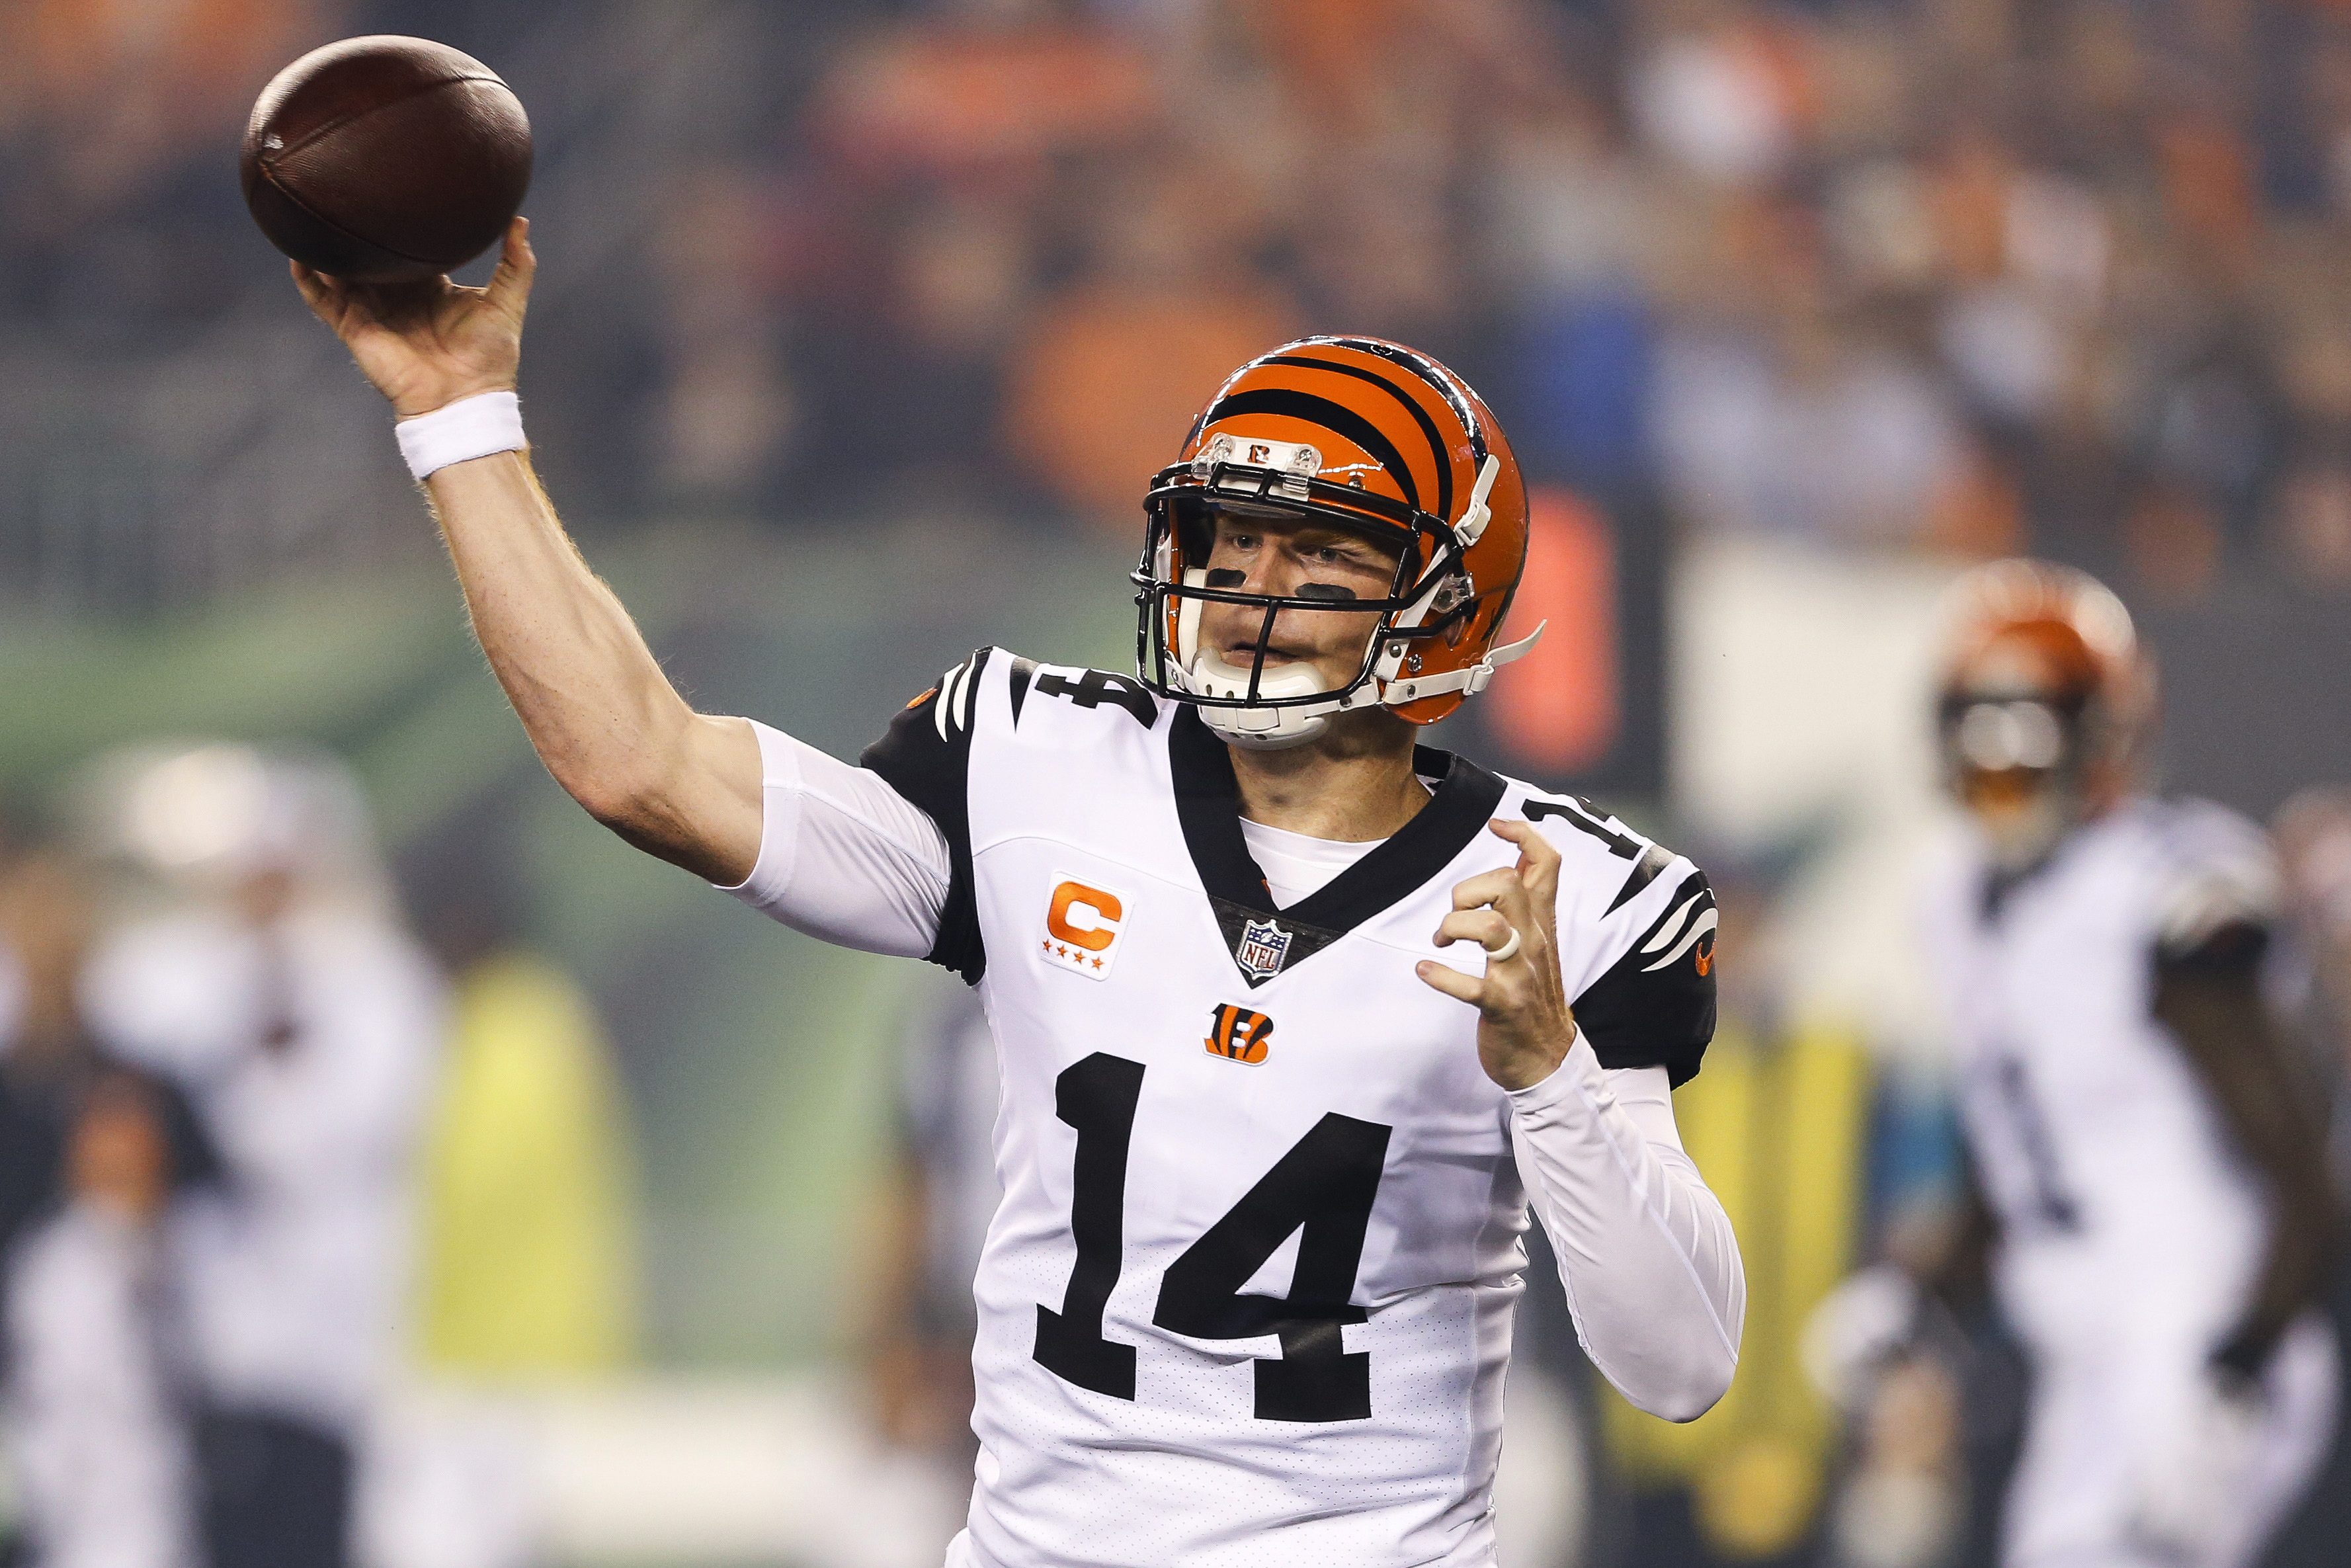 FILE - In this Thursday, Sept. 29, 2016, file photo, Cincinnati Bengals quarterback Andy Dalton throws during the first half of an NFL football game against the Miami Dolphins in Cincinnati.  Dalton is providing a suitable encore to his breakthrough seaso